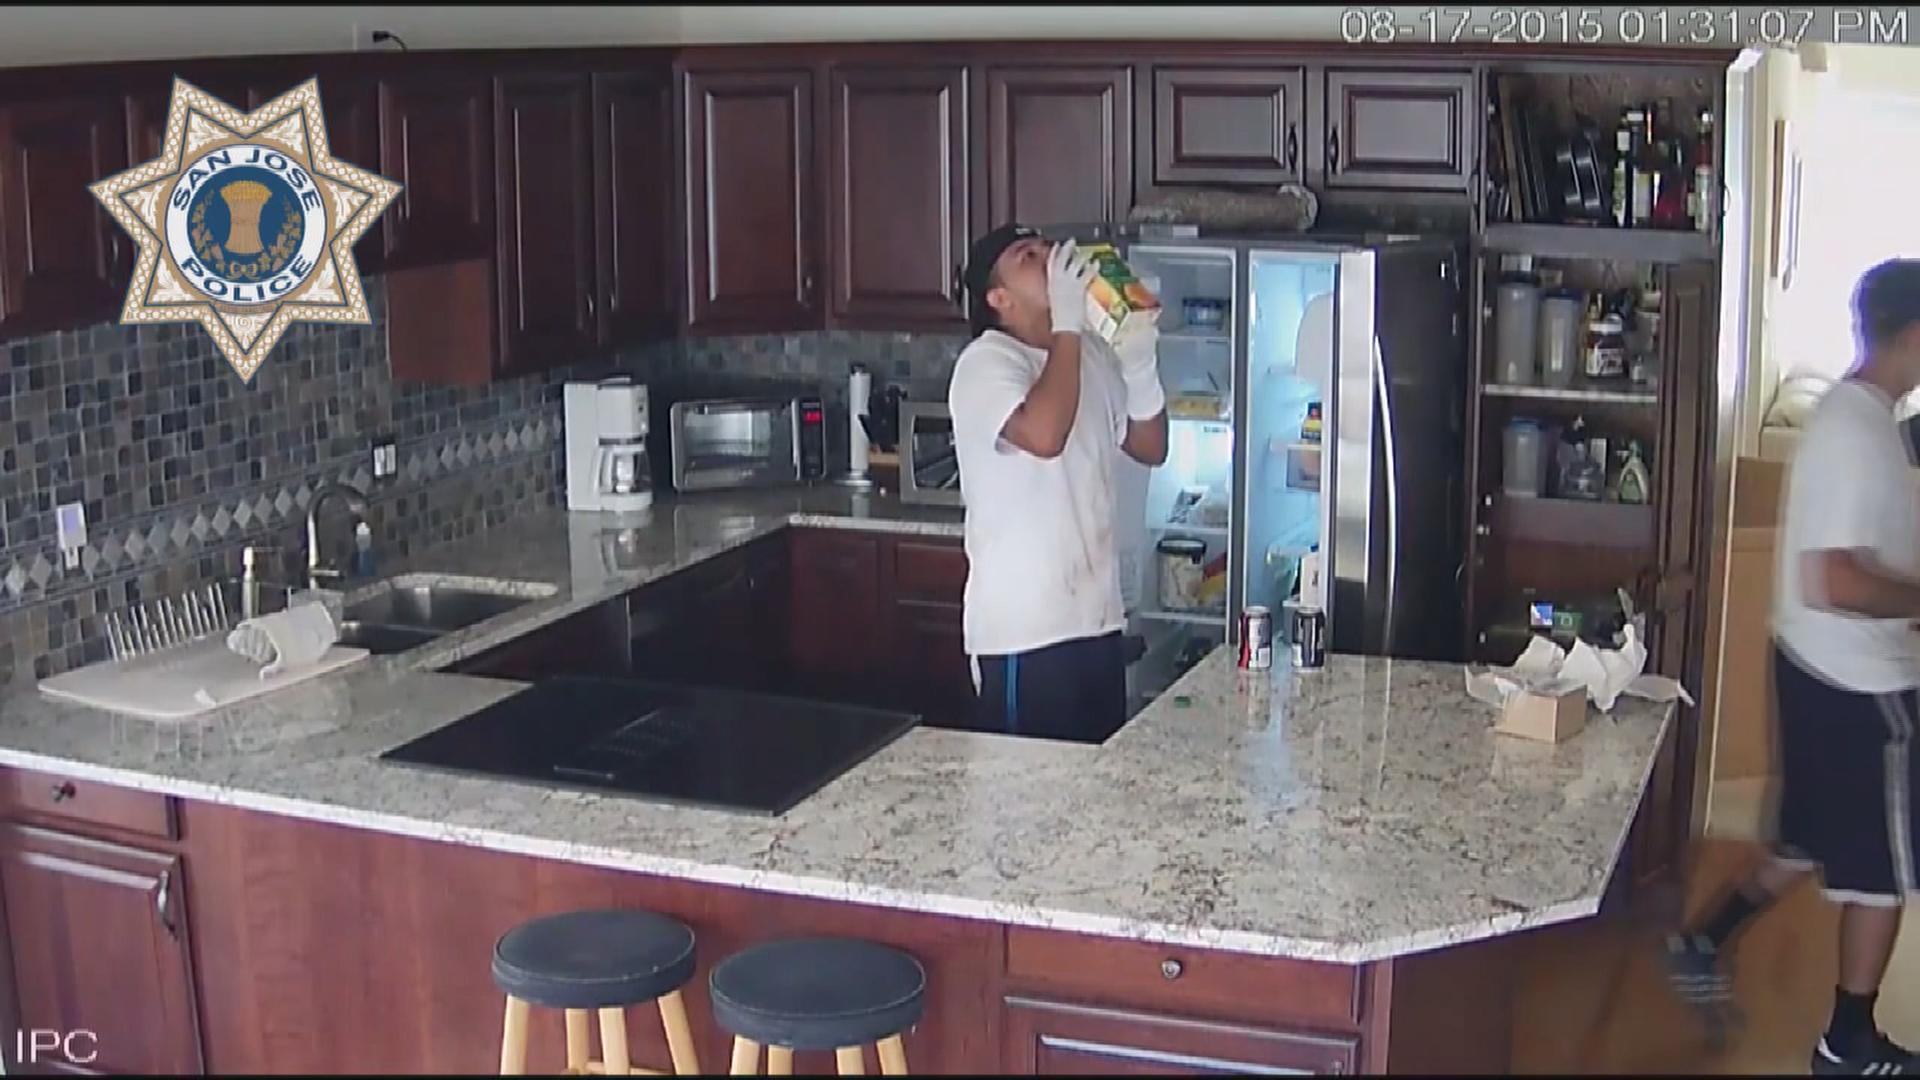 Police on Thursday released home surveillance video of three young gloved men inside a San Jose home - checking out food in the fridge and even drinking from a carton of orange juice - during a burglary where they also allegedly ransacked the place and stole an undisclosed amount of property on Aug. 17, 2015.